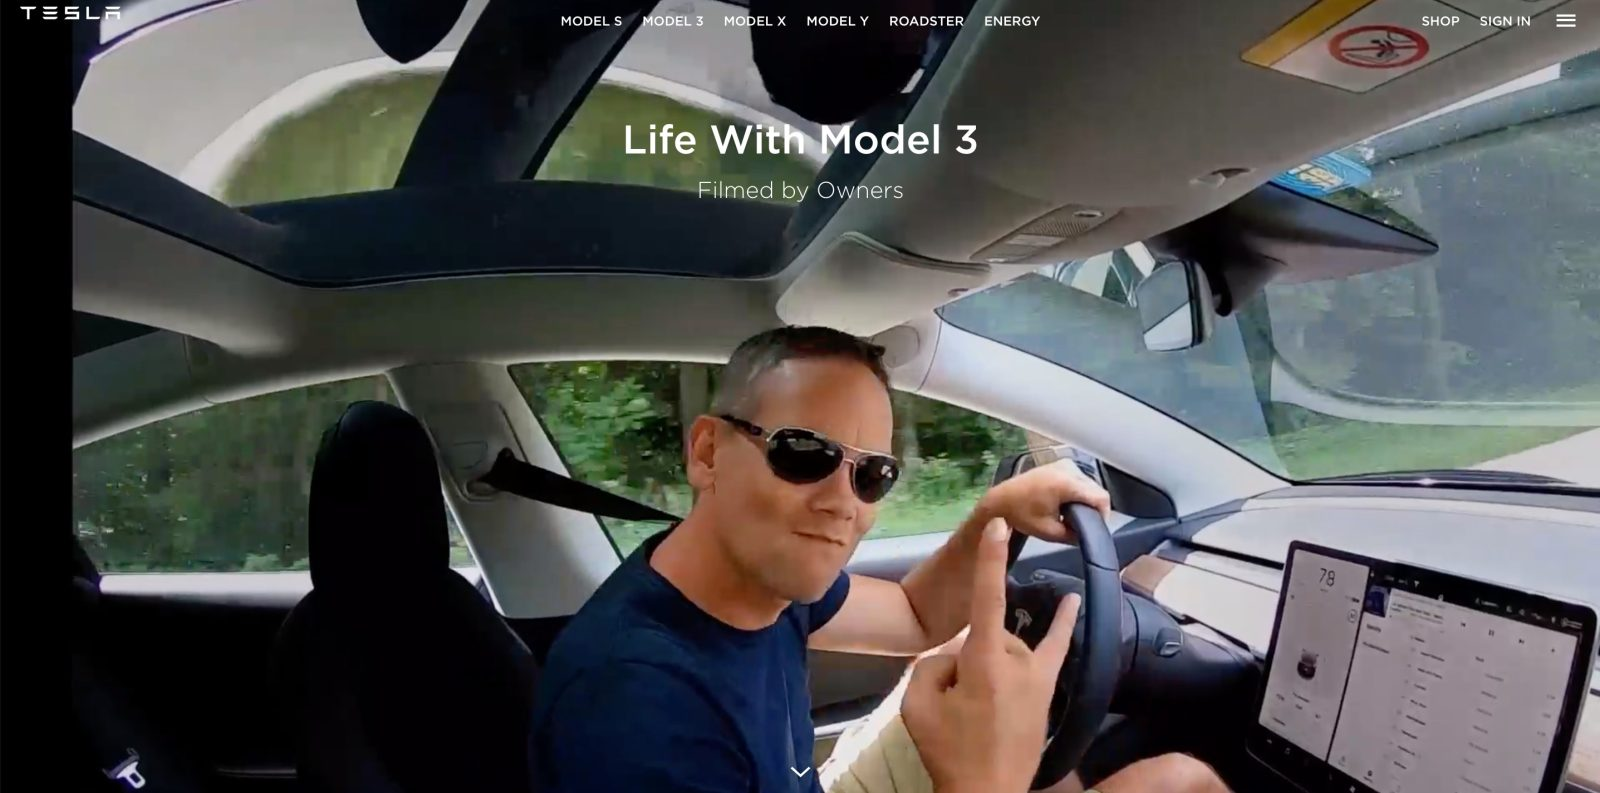 Tesla launches new 'Life with Model 3' series to promote ownership